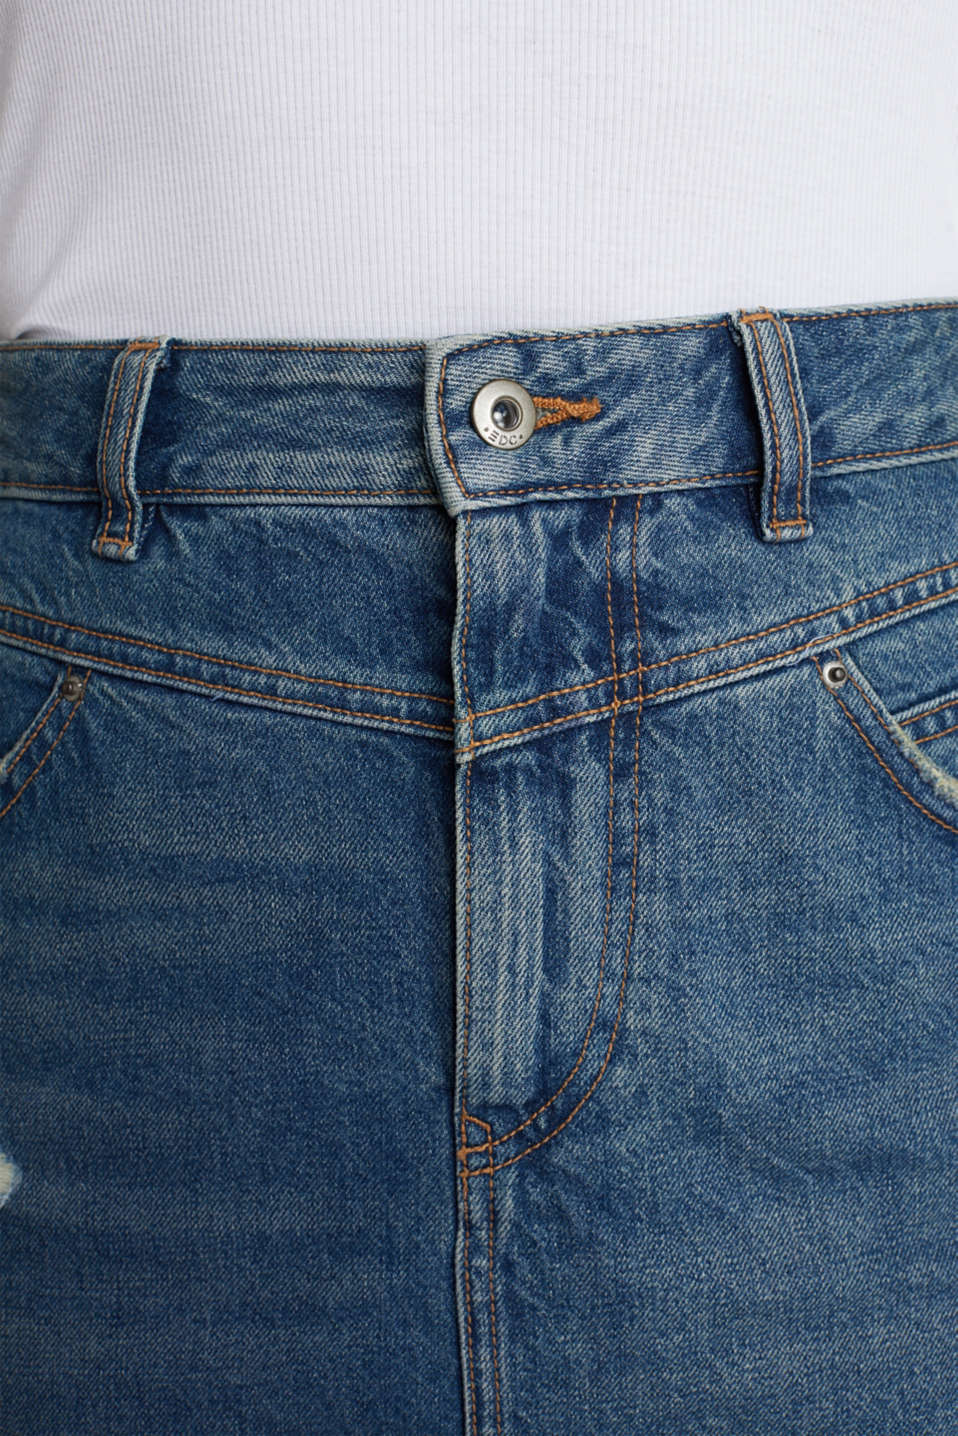 Denim skirt, 100% cotton, BLUE DARK WASH, detail image number 2